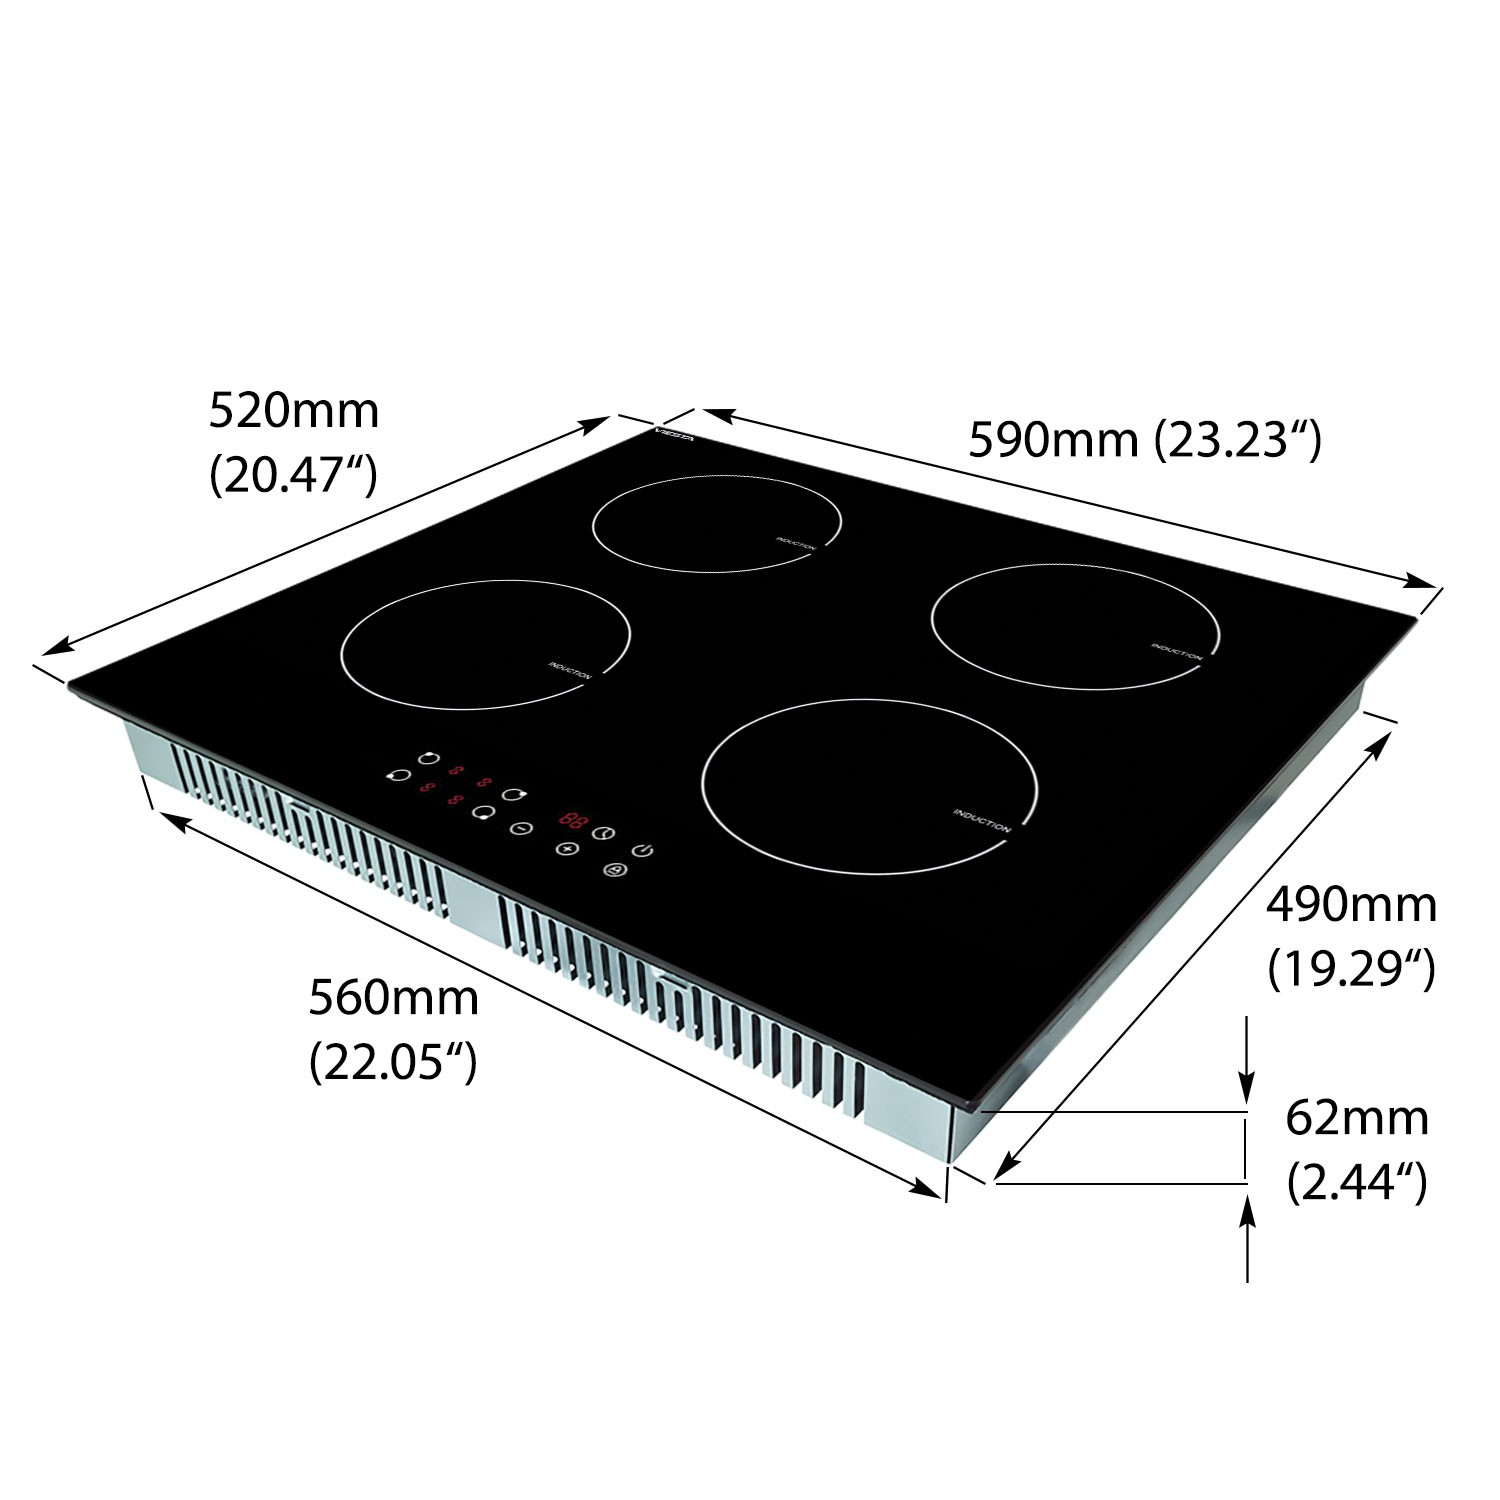 viesta 4 foyers plaque de cuisson induction contr le tactile cuisini re ebay. Black Bedroom Furniture Sets. Home Design Ideas